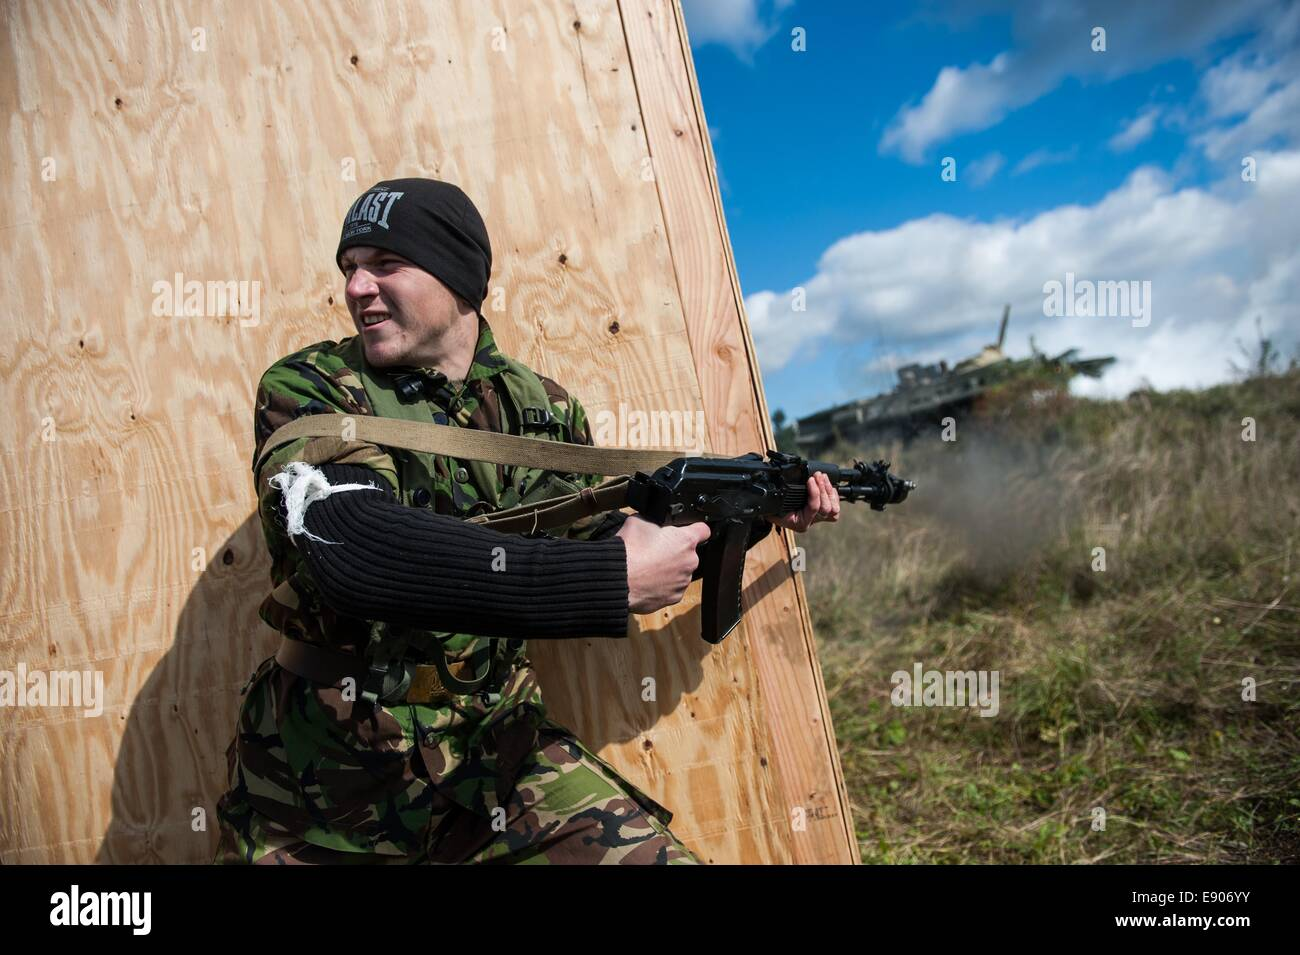 A Ukrainian military cadet acting as a simulated opposing force fires his rifle during a simulated high value target Stock Photo